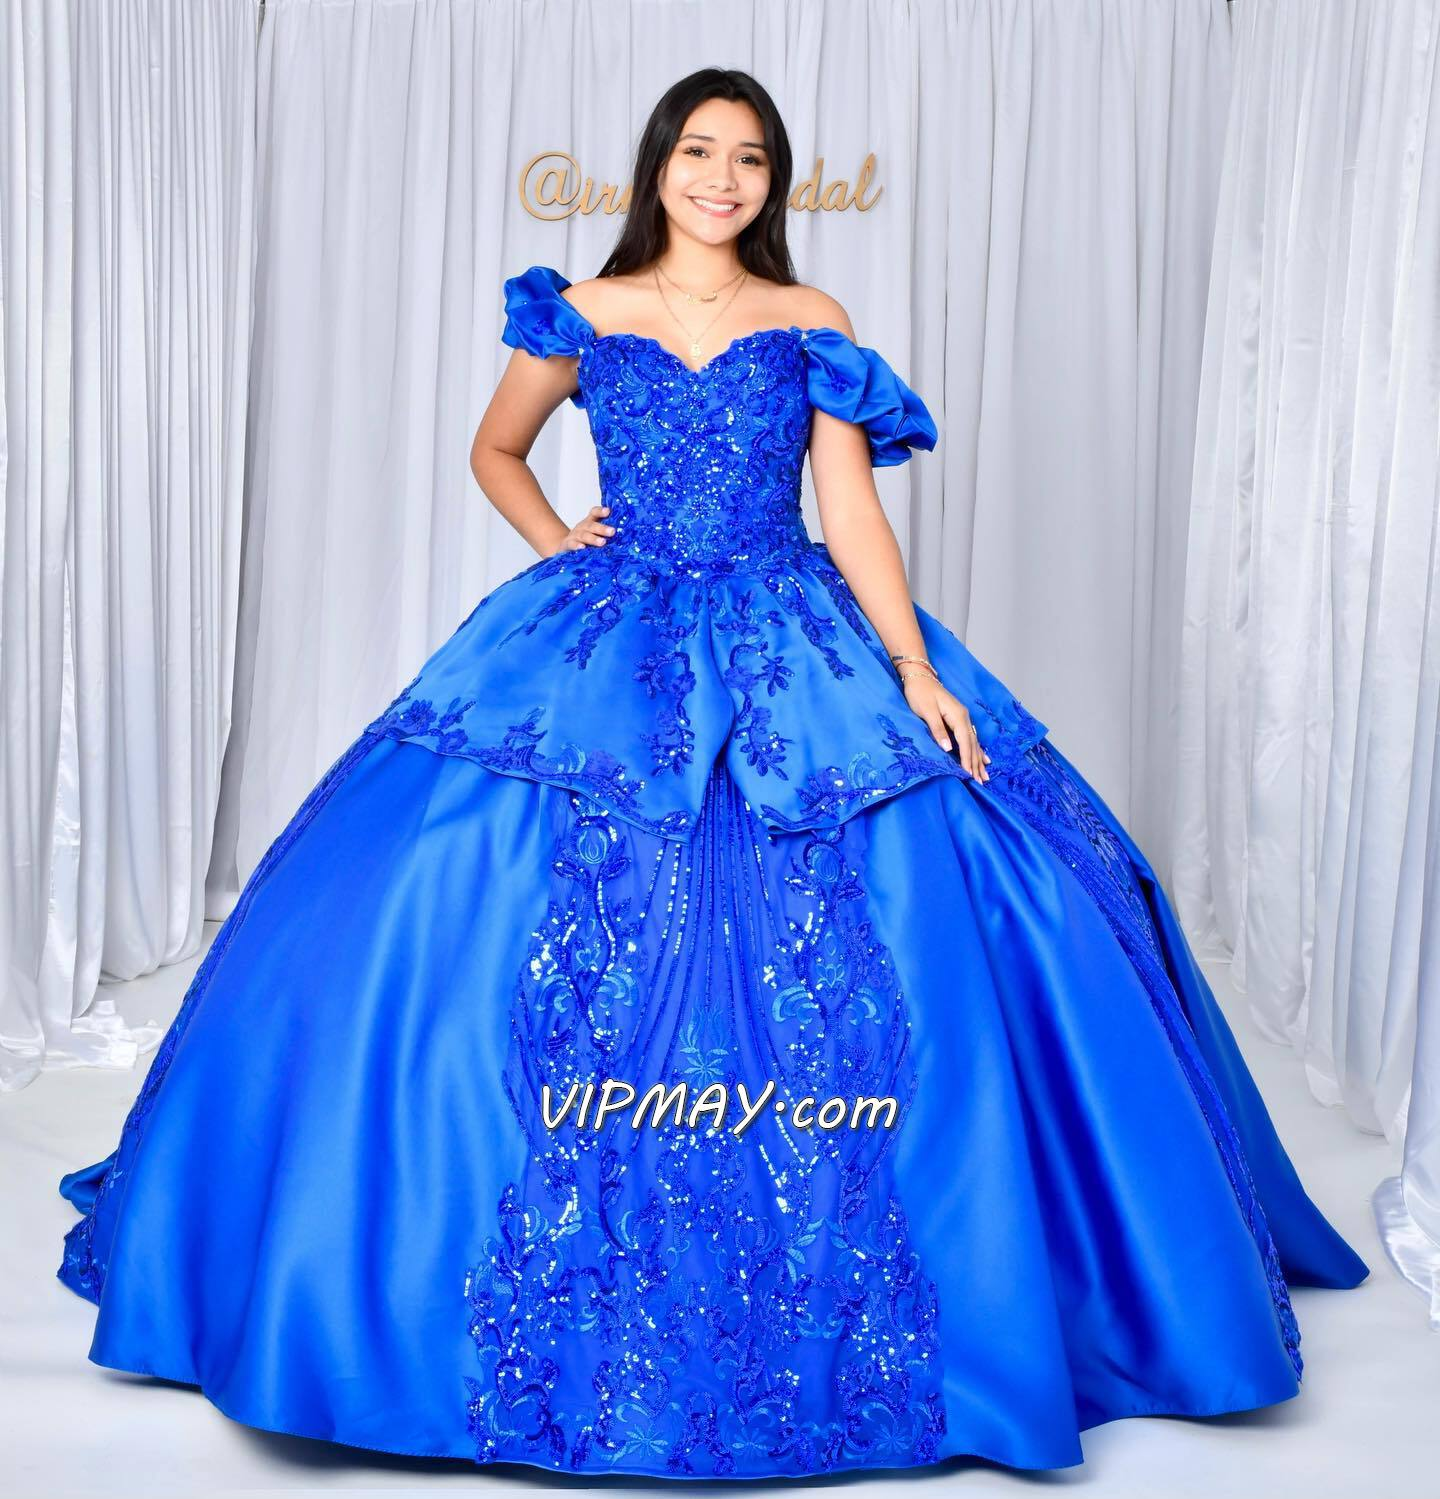 royal blue sweet 16 dress,royal blue quinceanera dress,sequin ball gown charro quinceanera dress,sequined quinceanera dress,quinceanera dress satin layers,cap sleeves quinceanera dress,quinceanera dress with a train,sparkly quinceanera dress,sweetheart sweet sixteen dress,sweetheart neckline quinceanera dress,wholesale quinceanera dress from china,quinceanera dress discount prices,modest and elegant quinceanera dress,quinceanera dress free shipping,